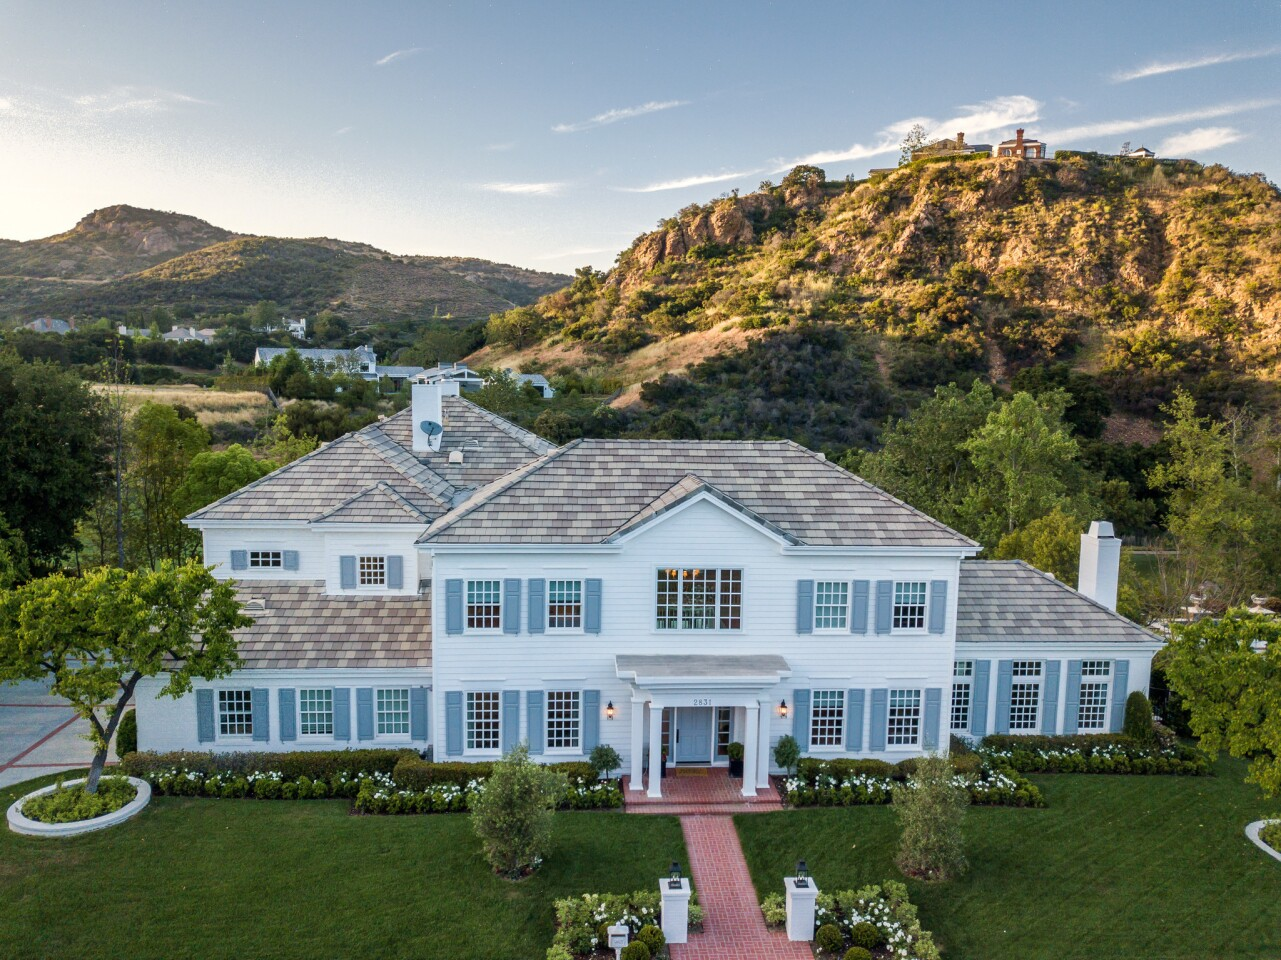 Joshua Morrow's Lake Sherwood house | Hot Property